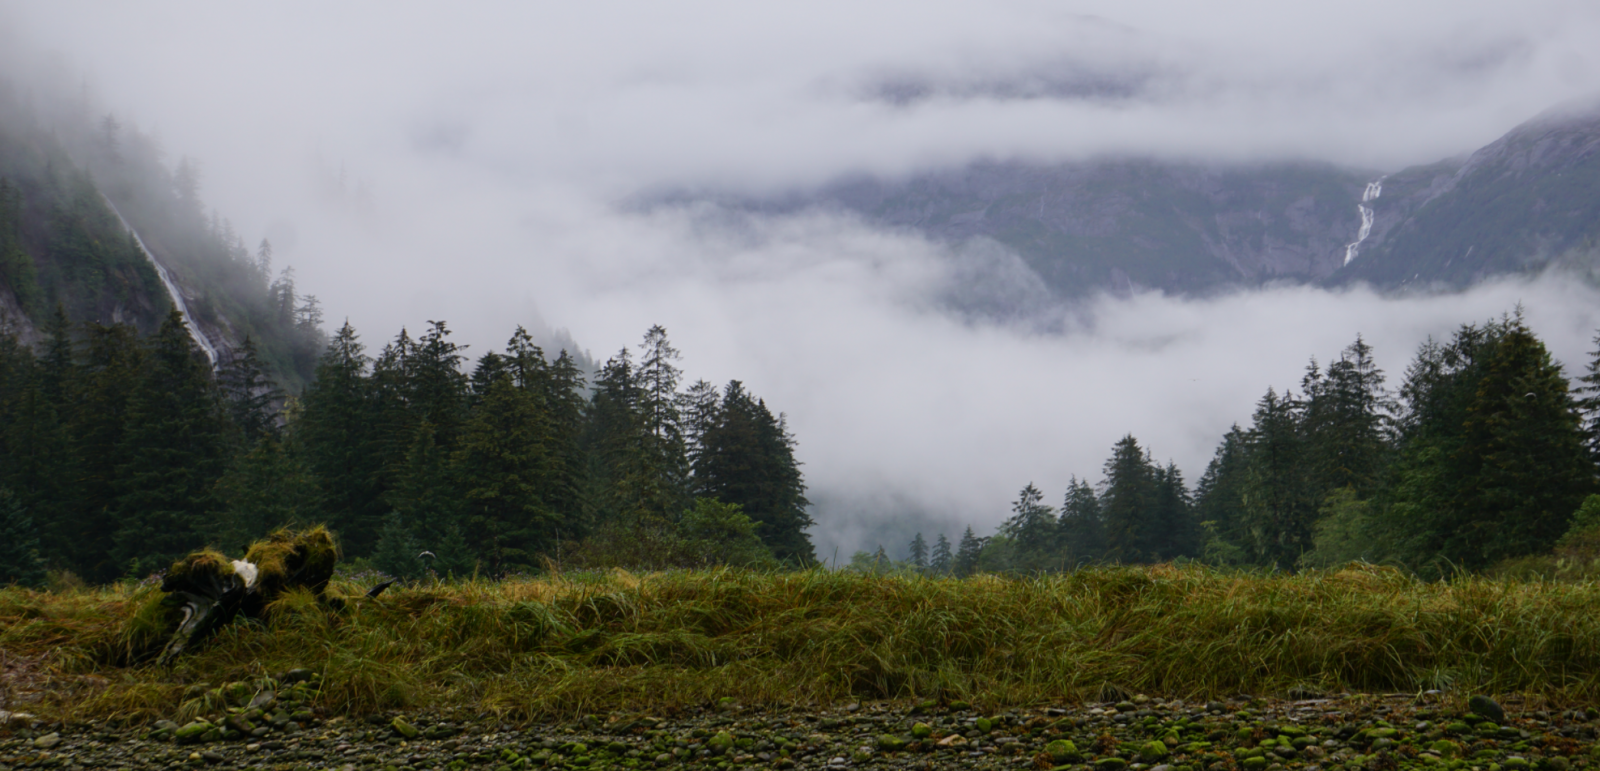 Great bear Rainforest, Mussel Inlet, old-growth trees, ancient forest, temperate coastal rainforestq